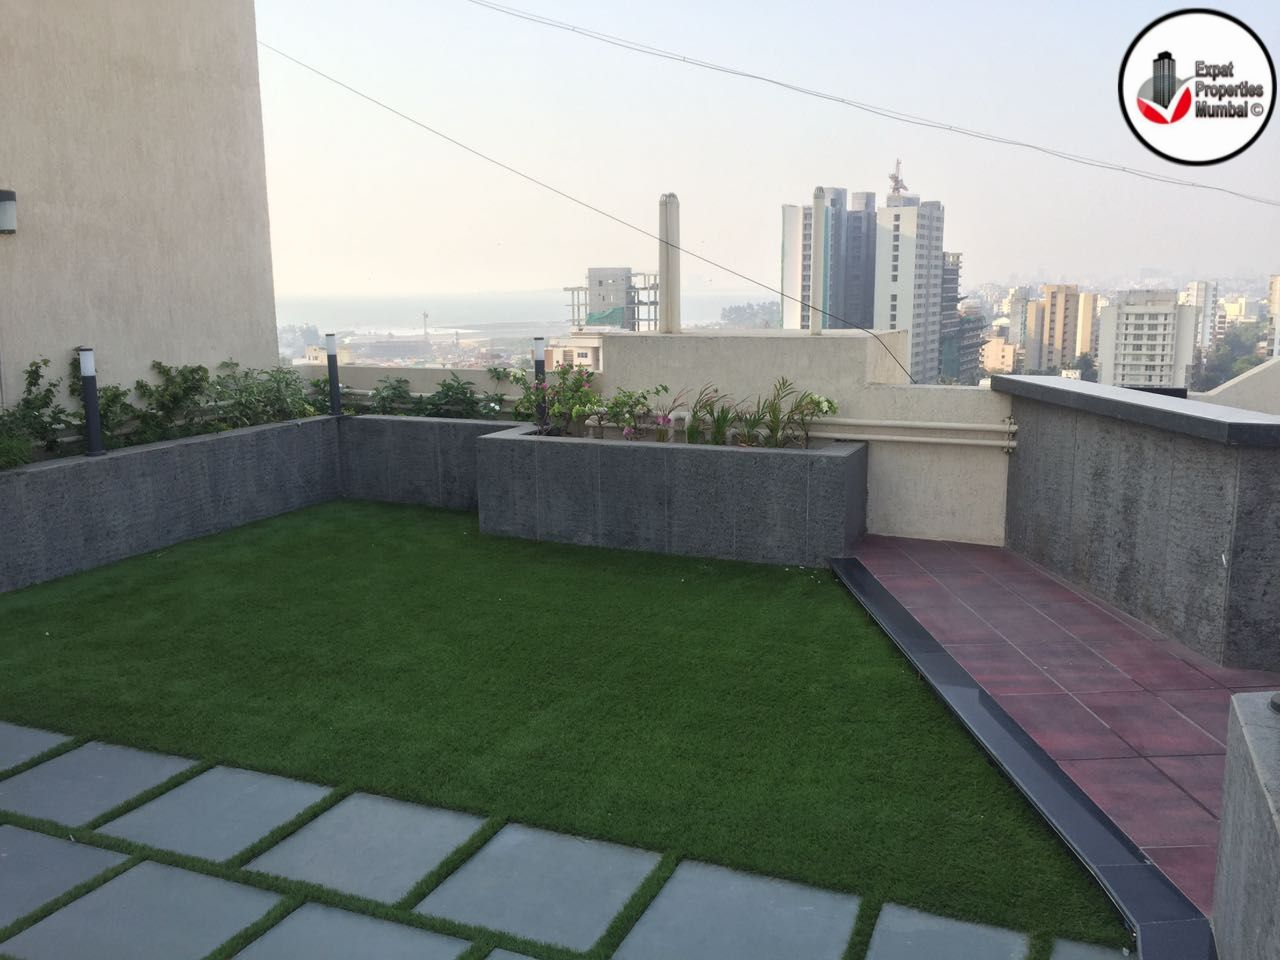 4 Bhk Duplex Penthouse For Rent In Khar Duplex Apartments For